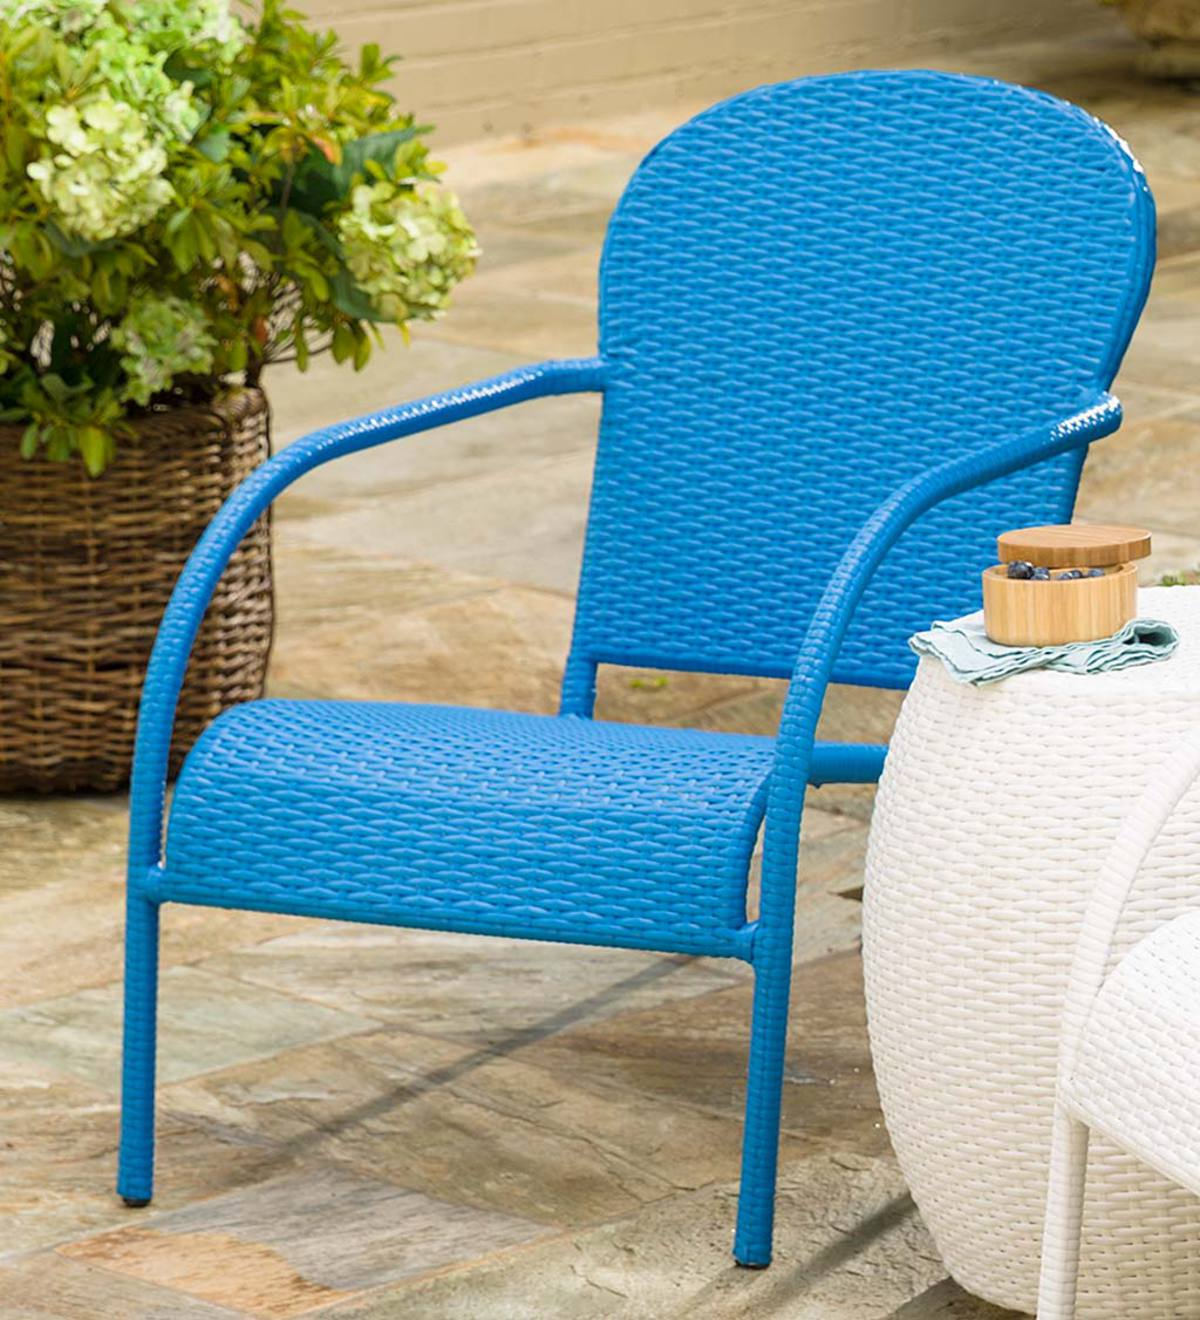 Surprising Stackable Outdoor Wicker Lounge Chair Blue Plowhearth Cjindustries Chair Design For Home Cjindustriesco